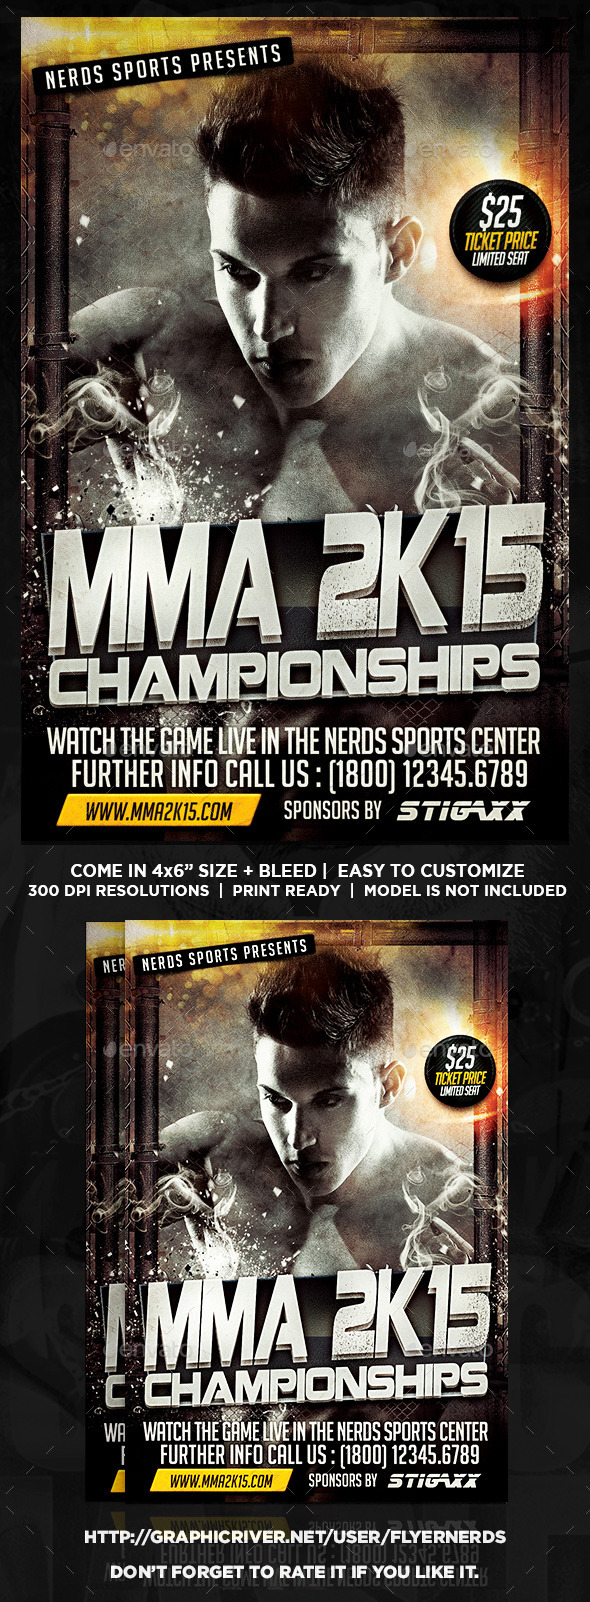 MMA 2K15 Championships Sports Flyer - Sports Events